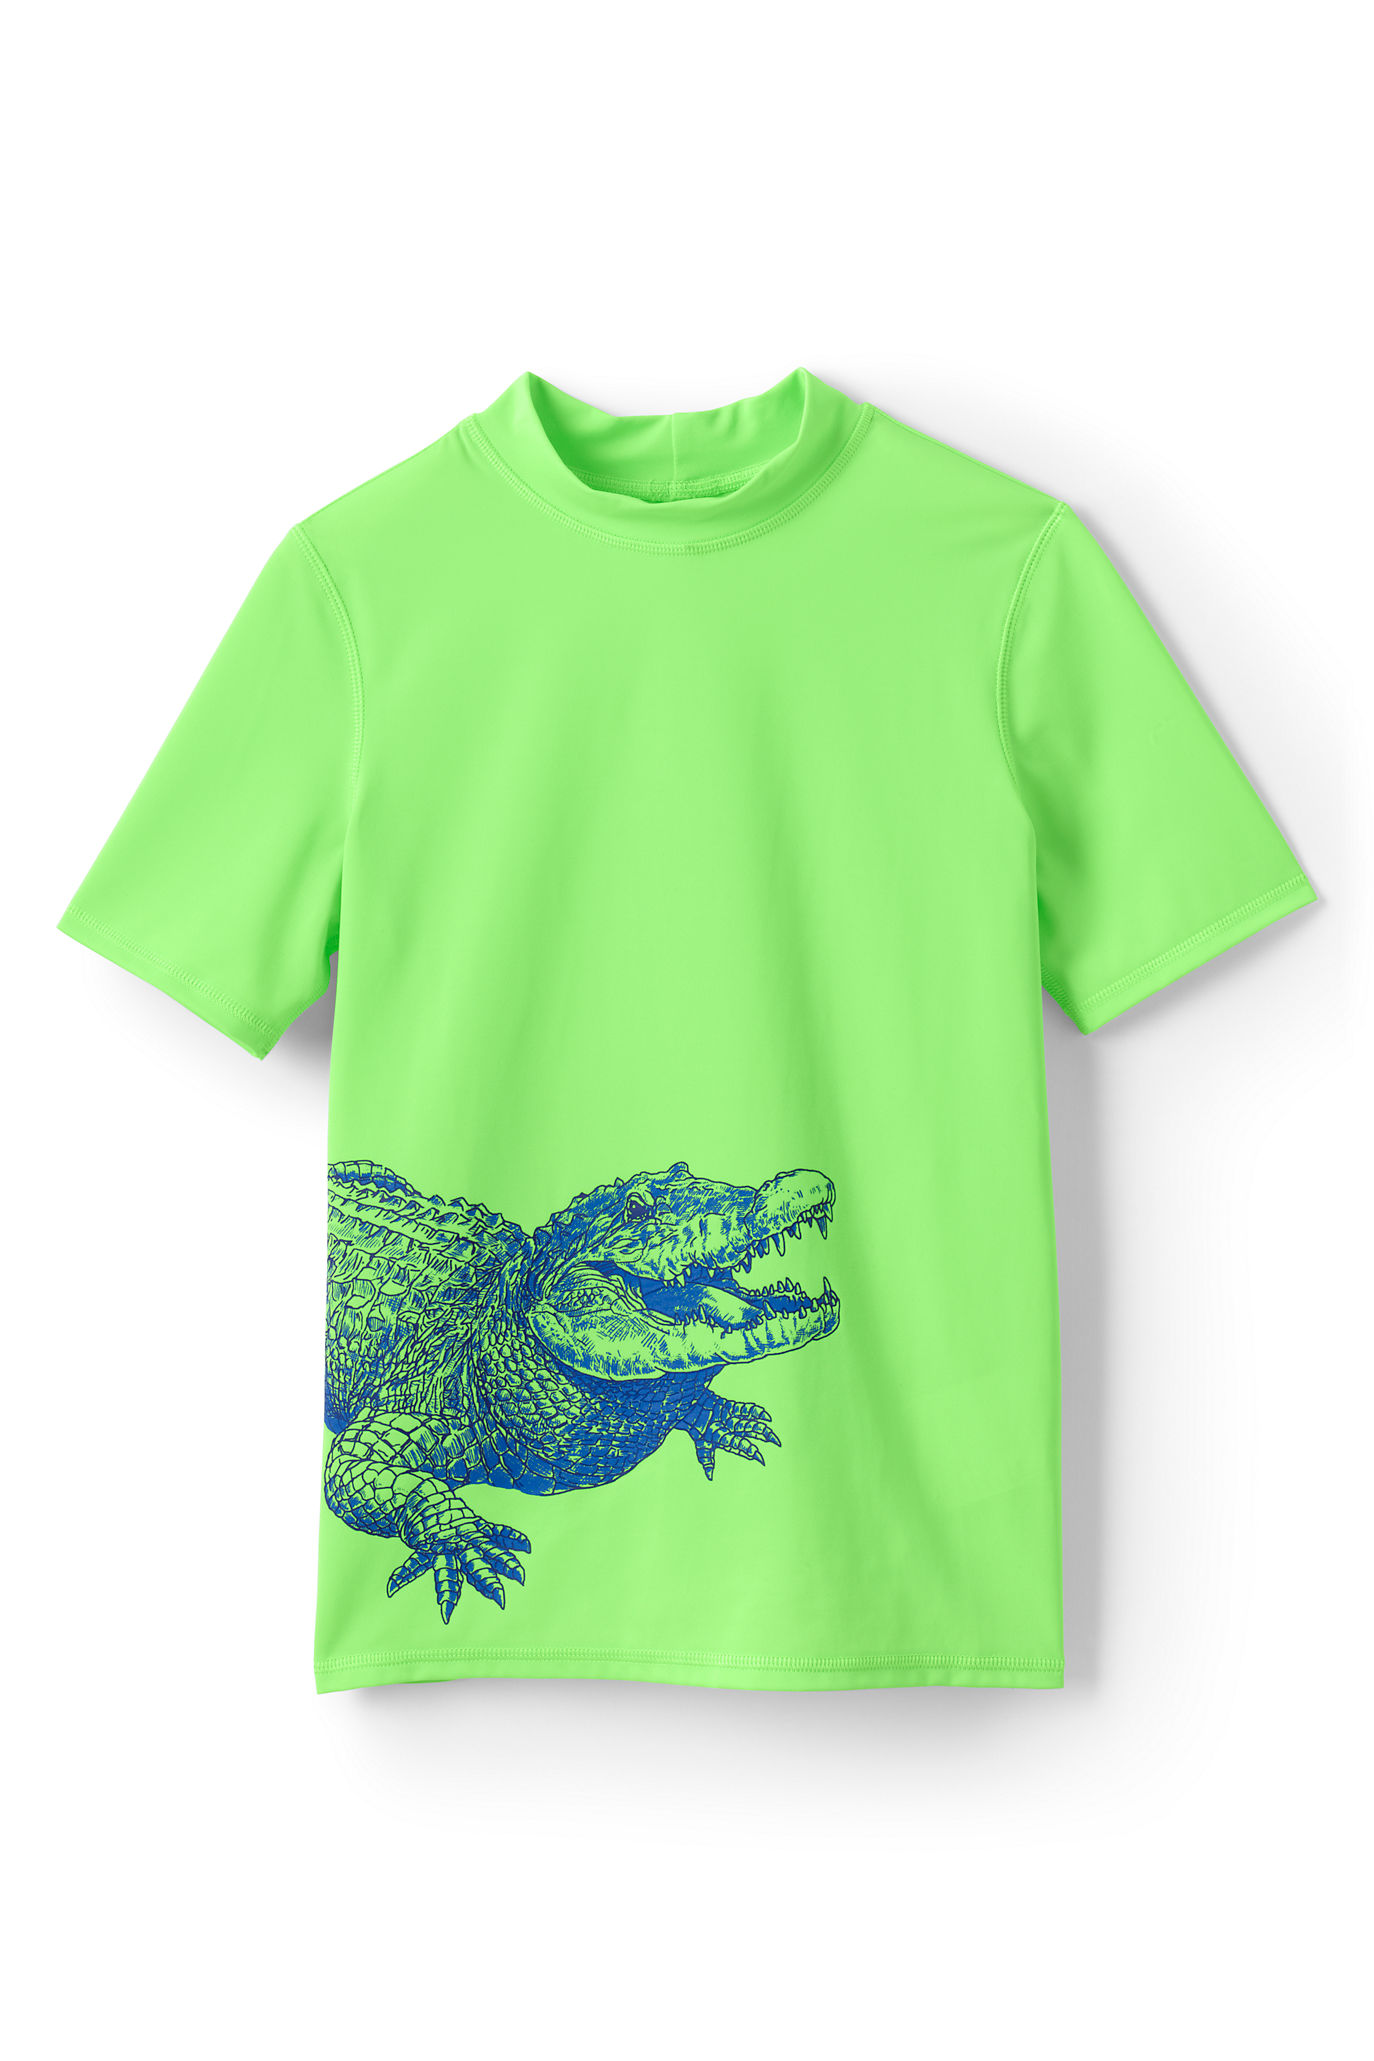 Rash guards with UPF: Gator rash guard | Land's End